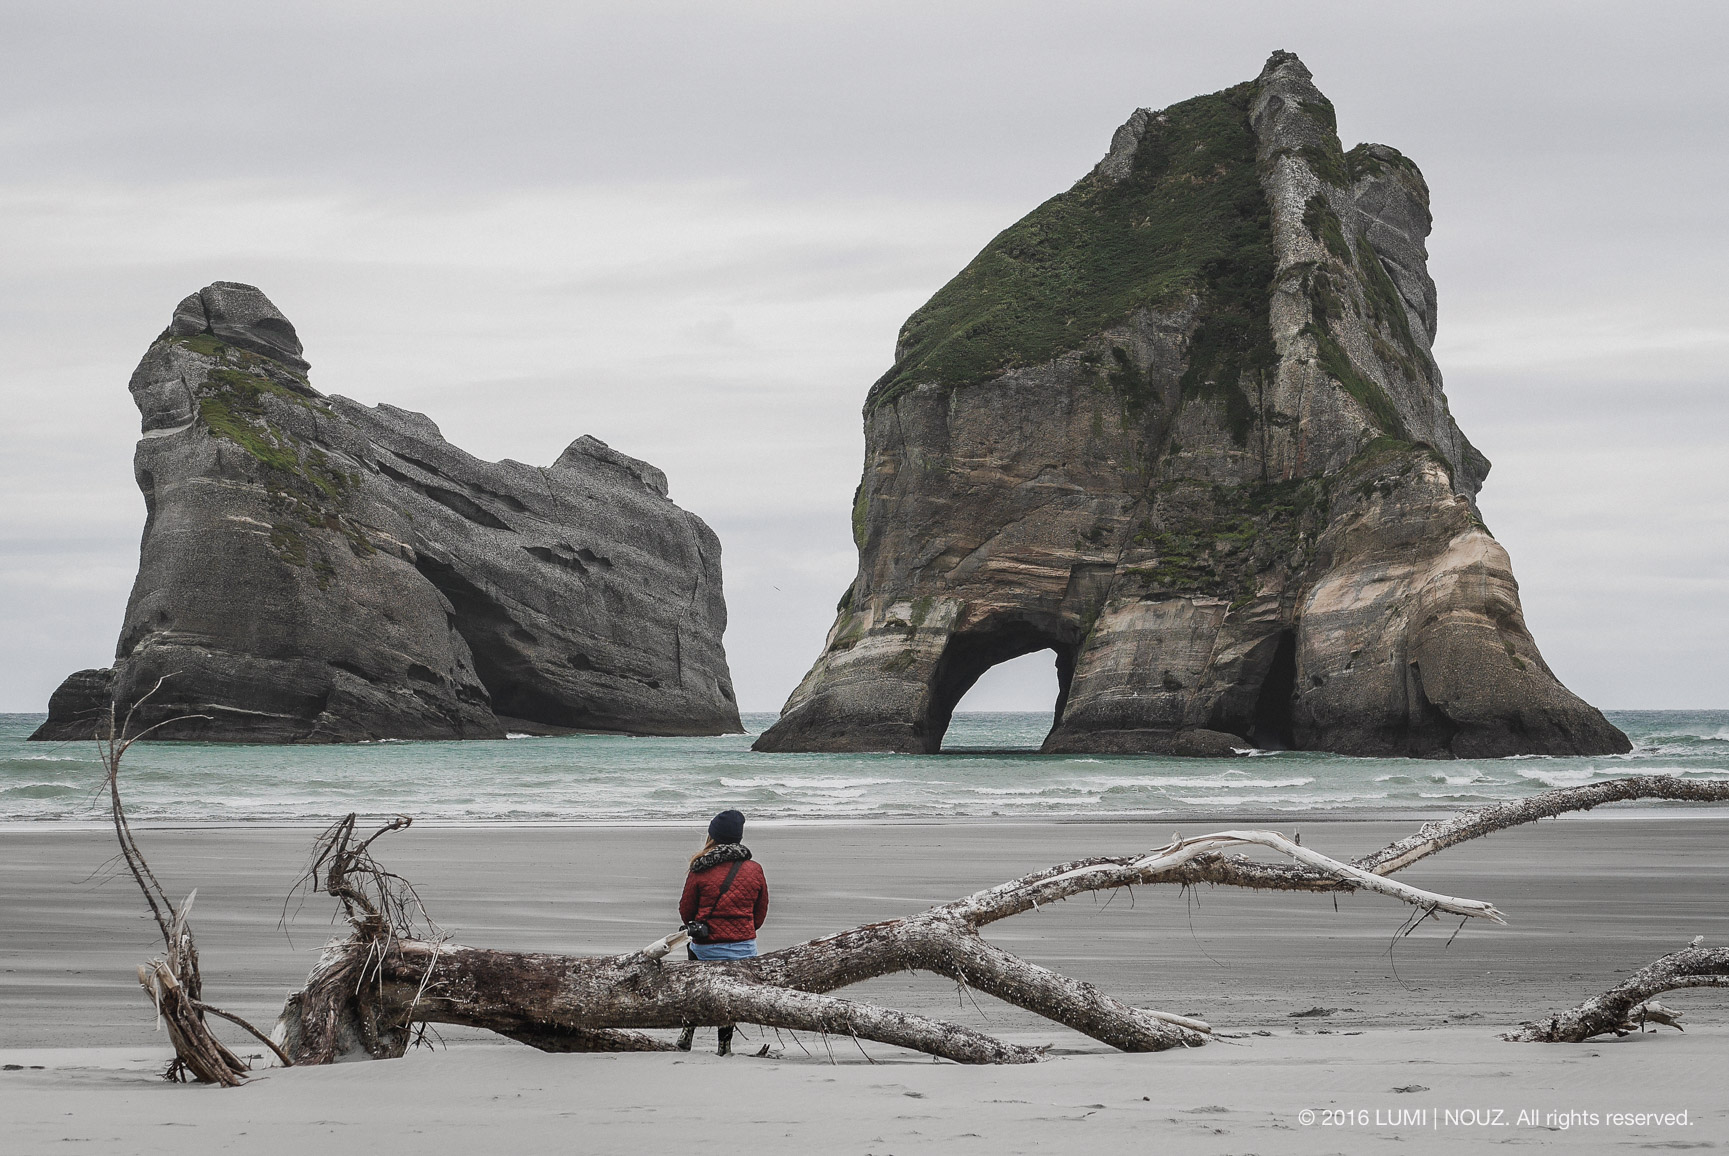 Wharariki Beach, South Island, New Zealand